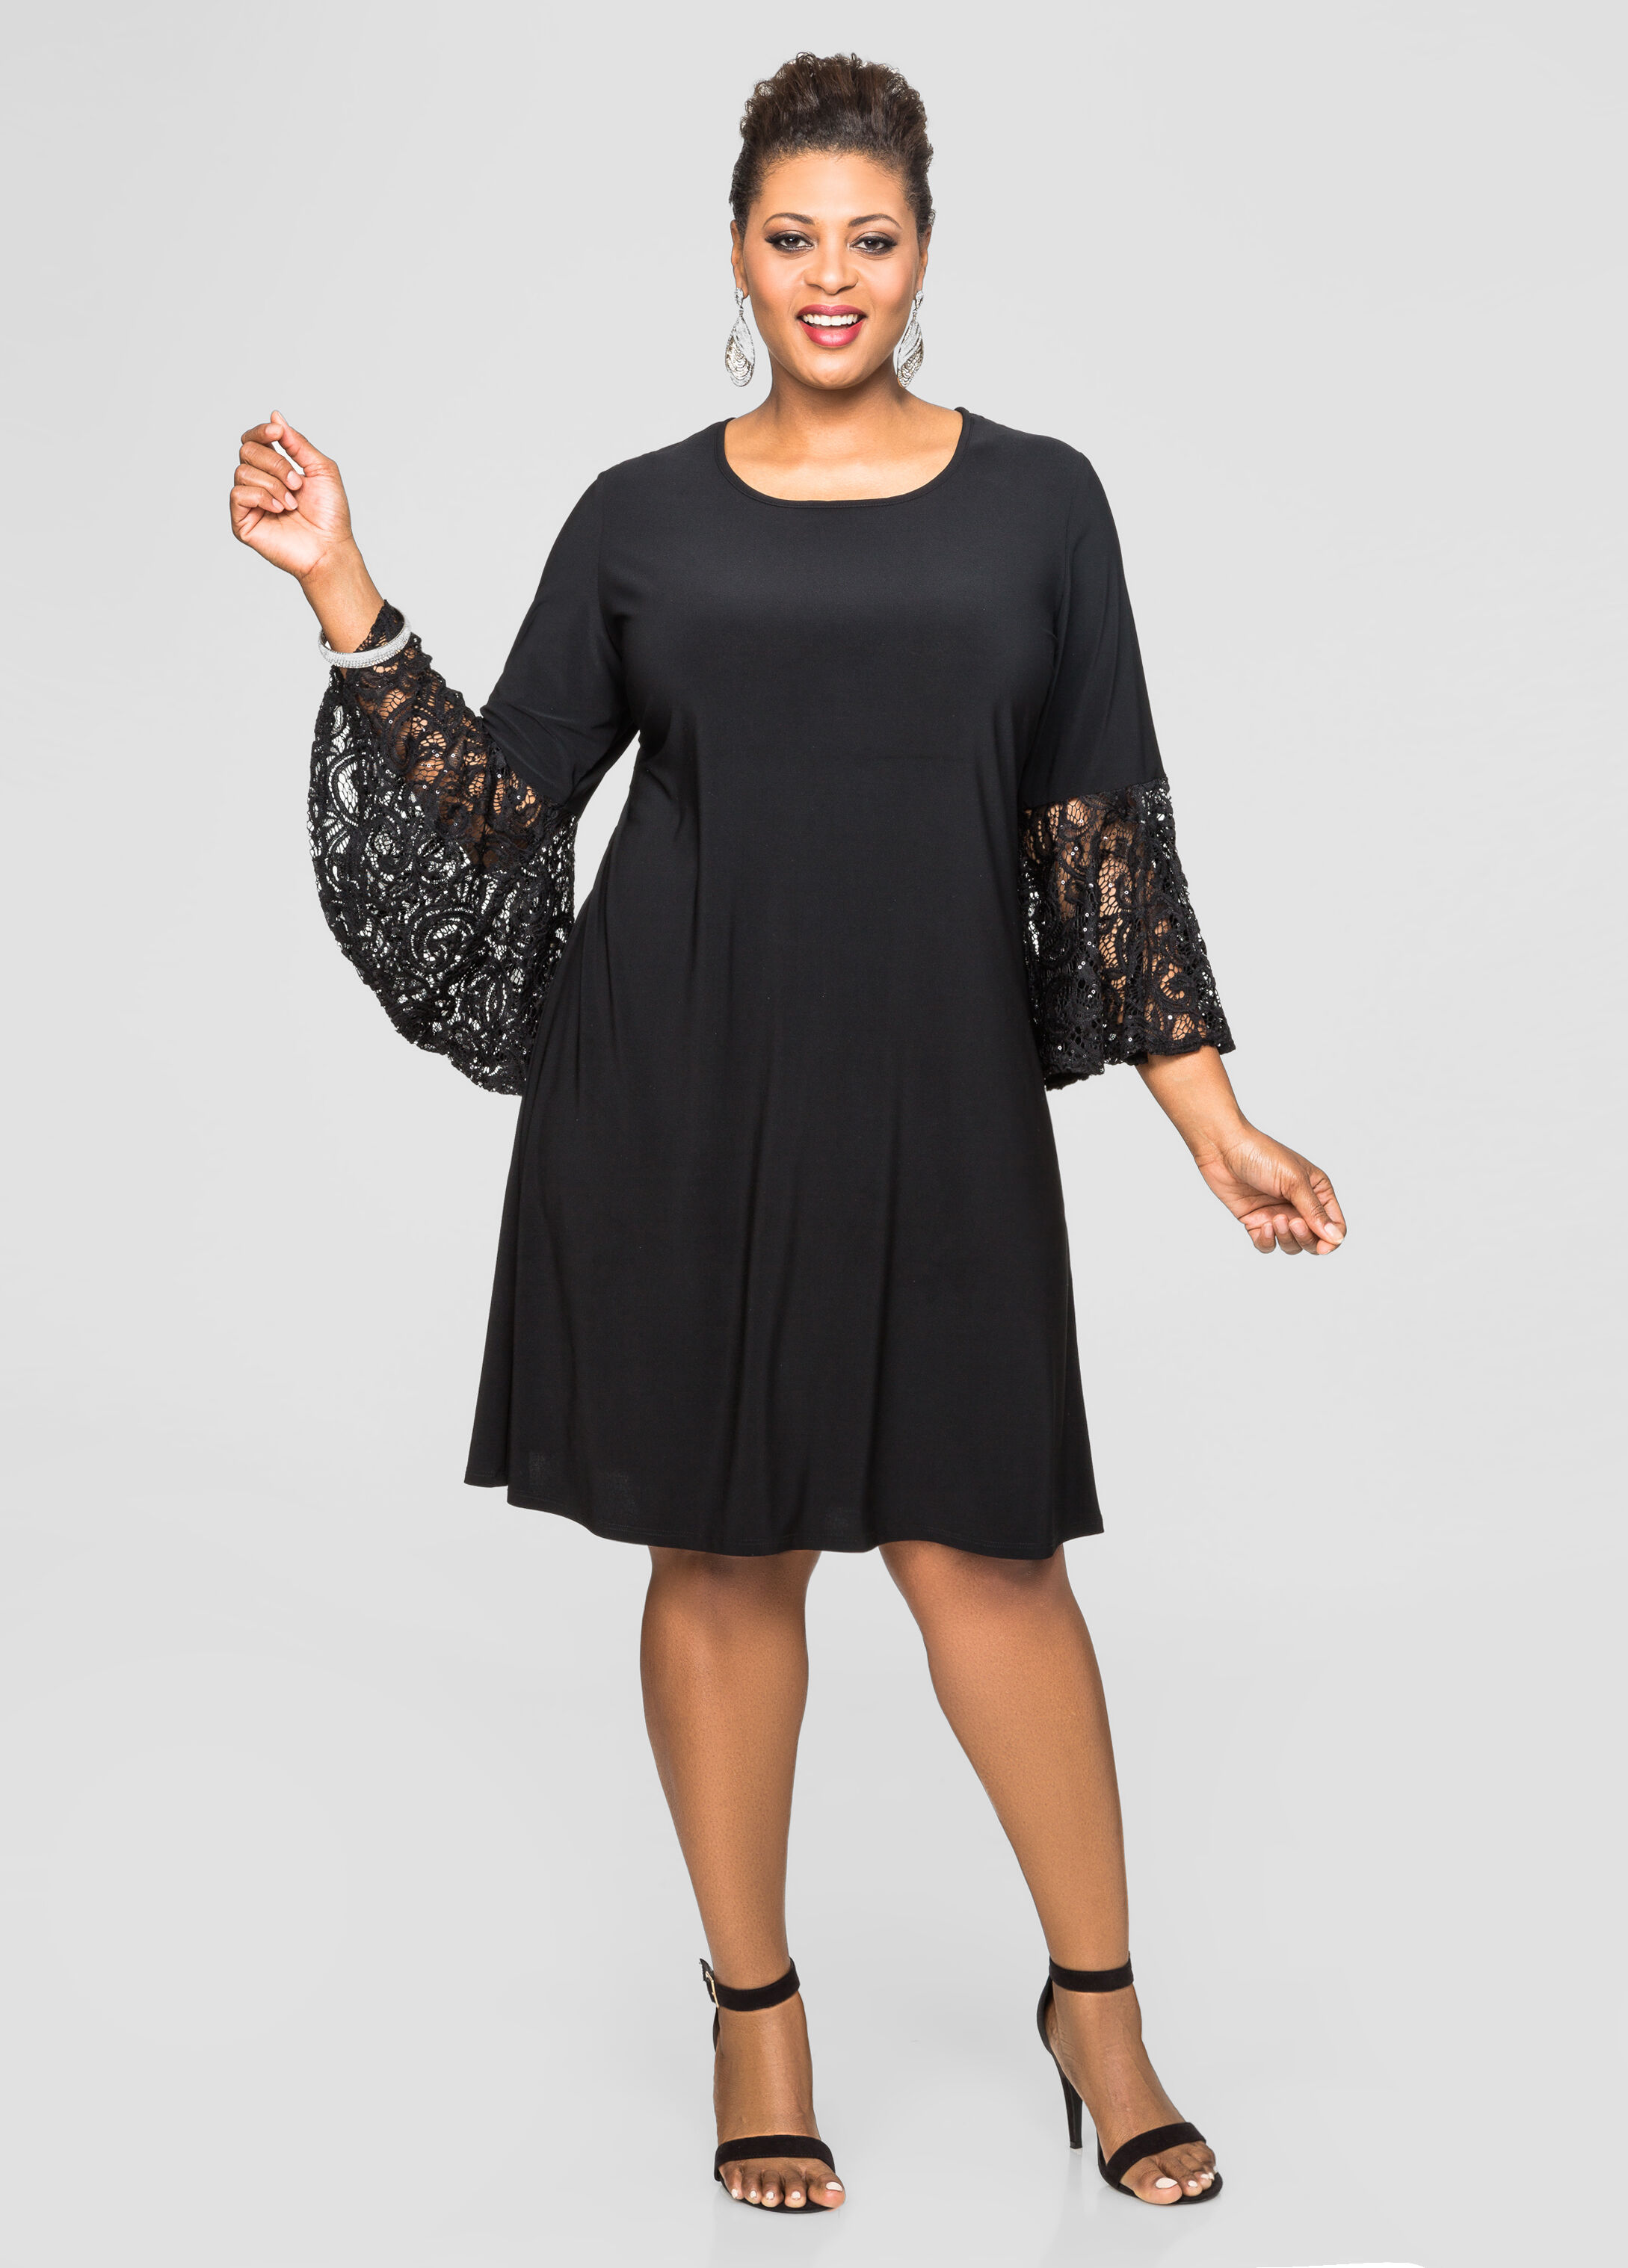 Plus Size Dresses - Sequin Bell Sleeve Dress - 010-8696WS